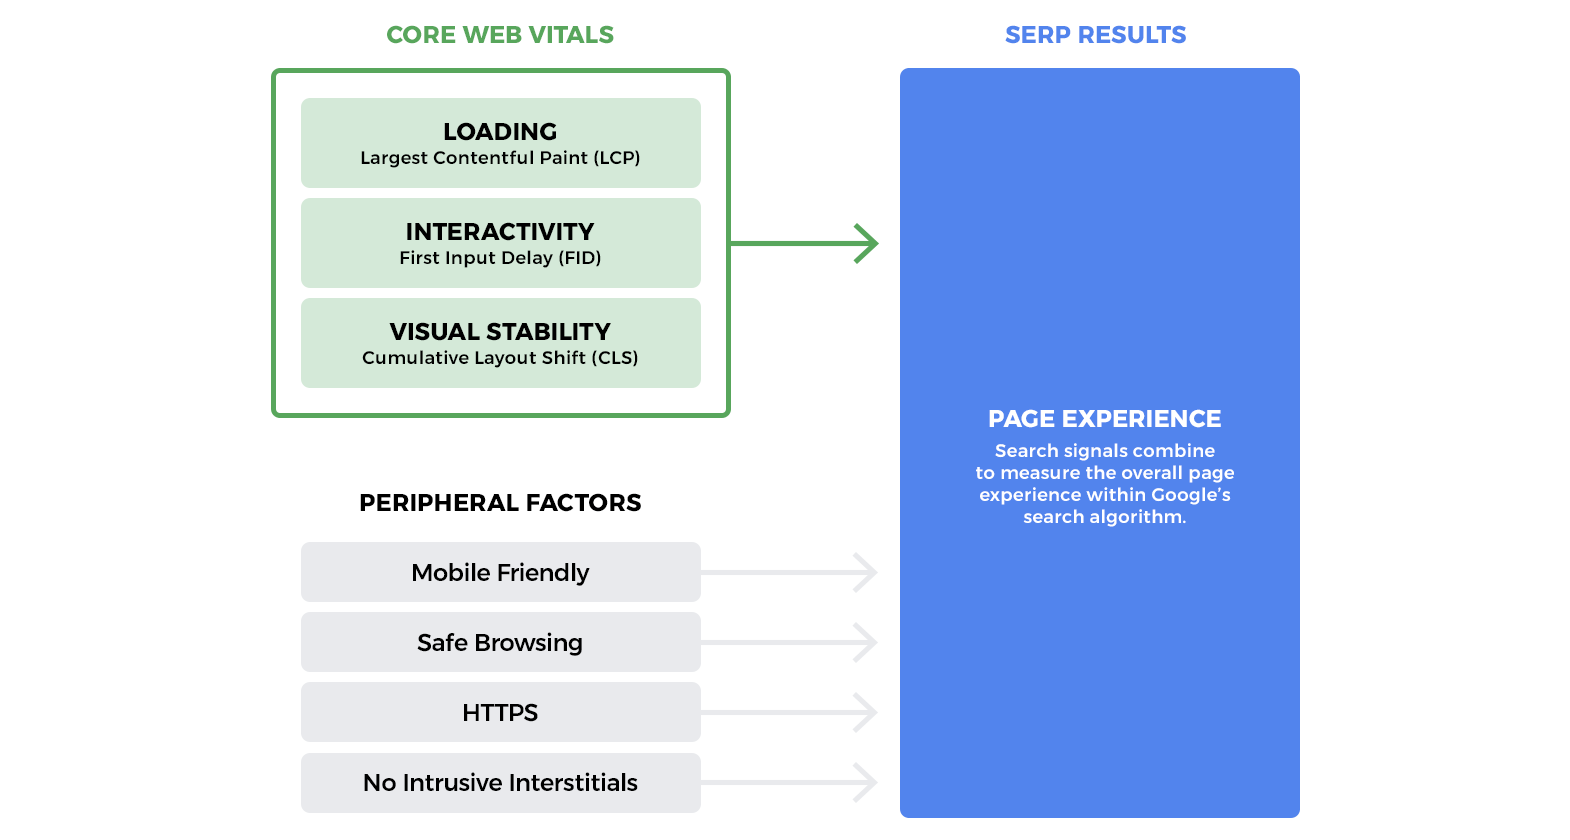 Core Web Vitals Diagram – How Page Experience is Measured